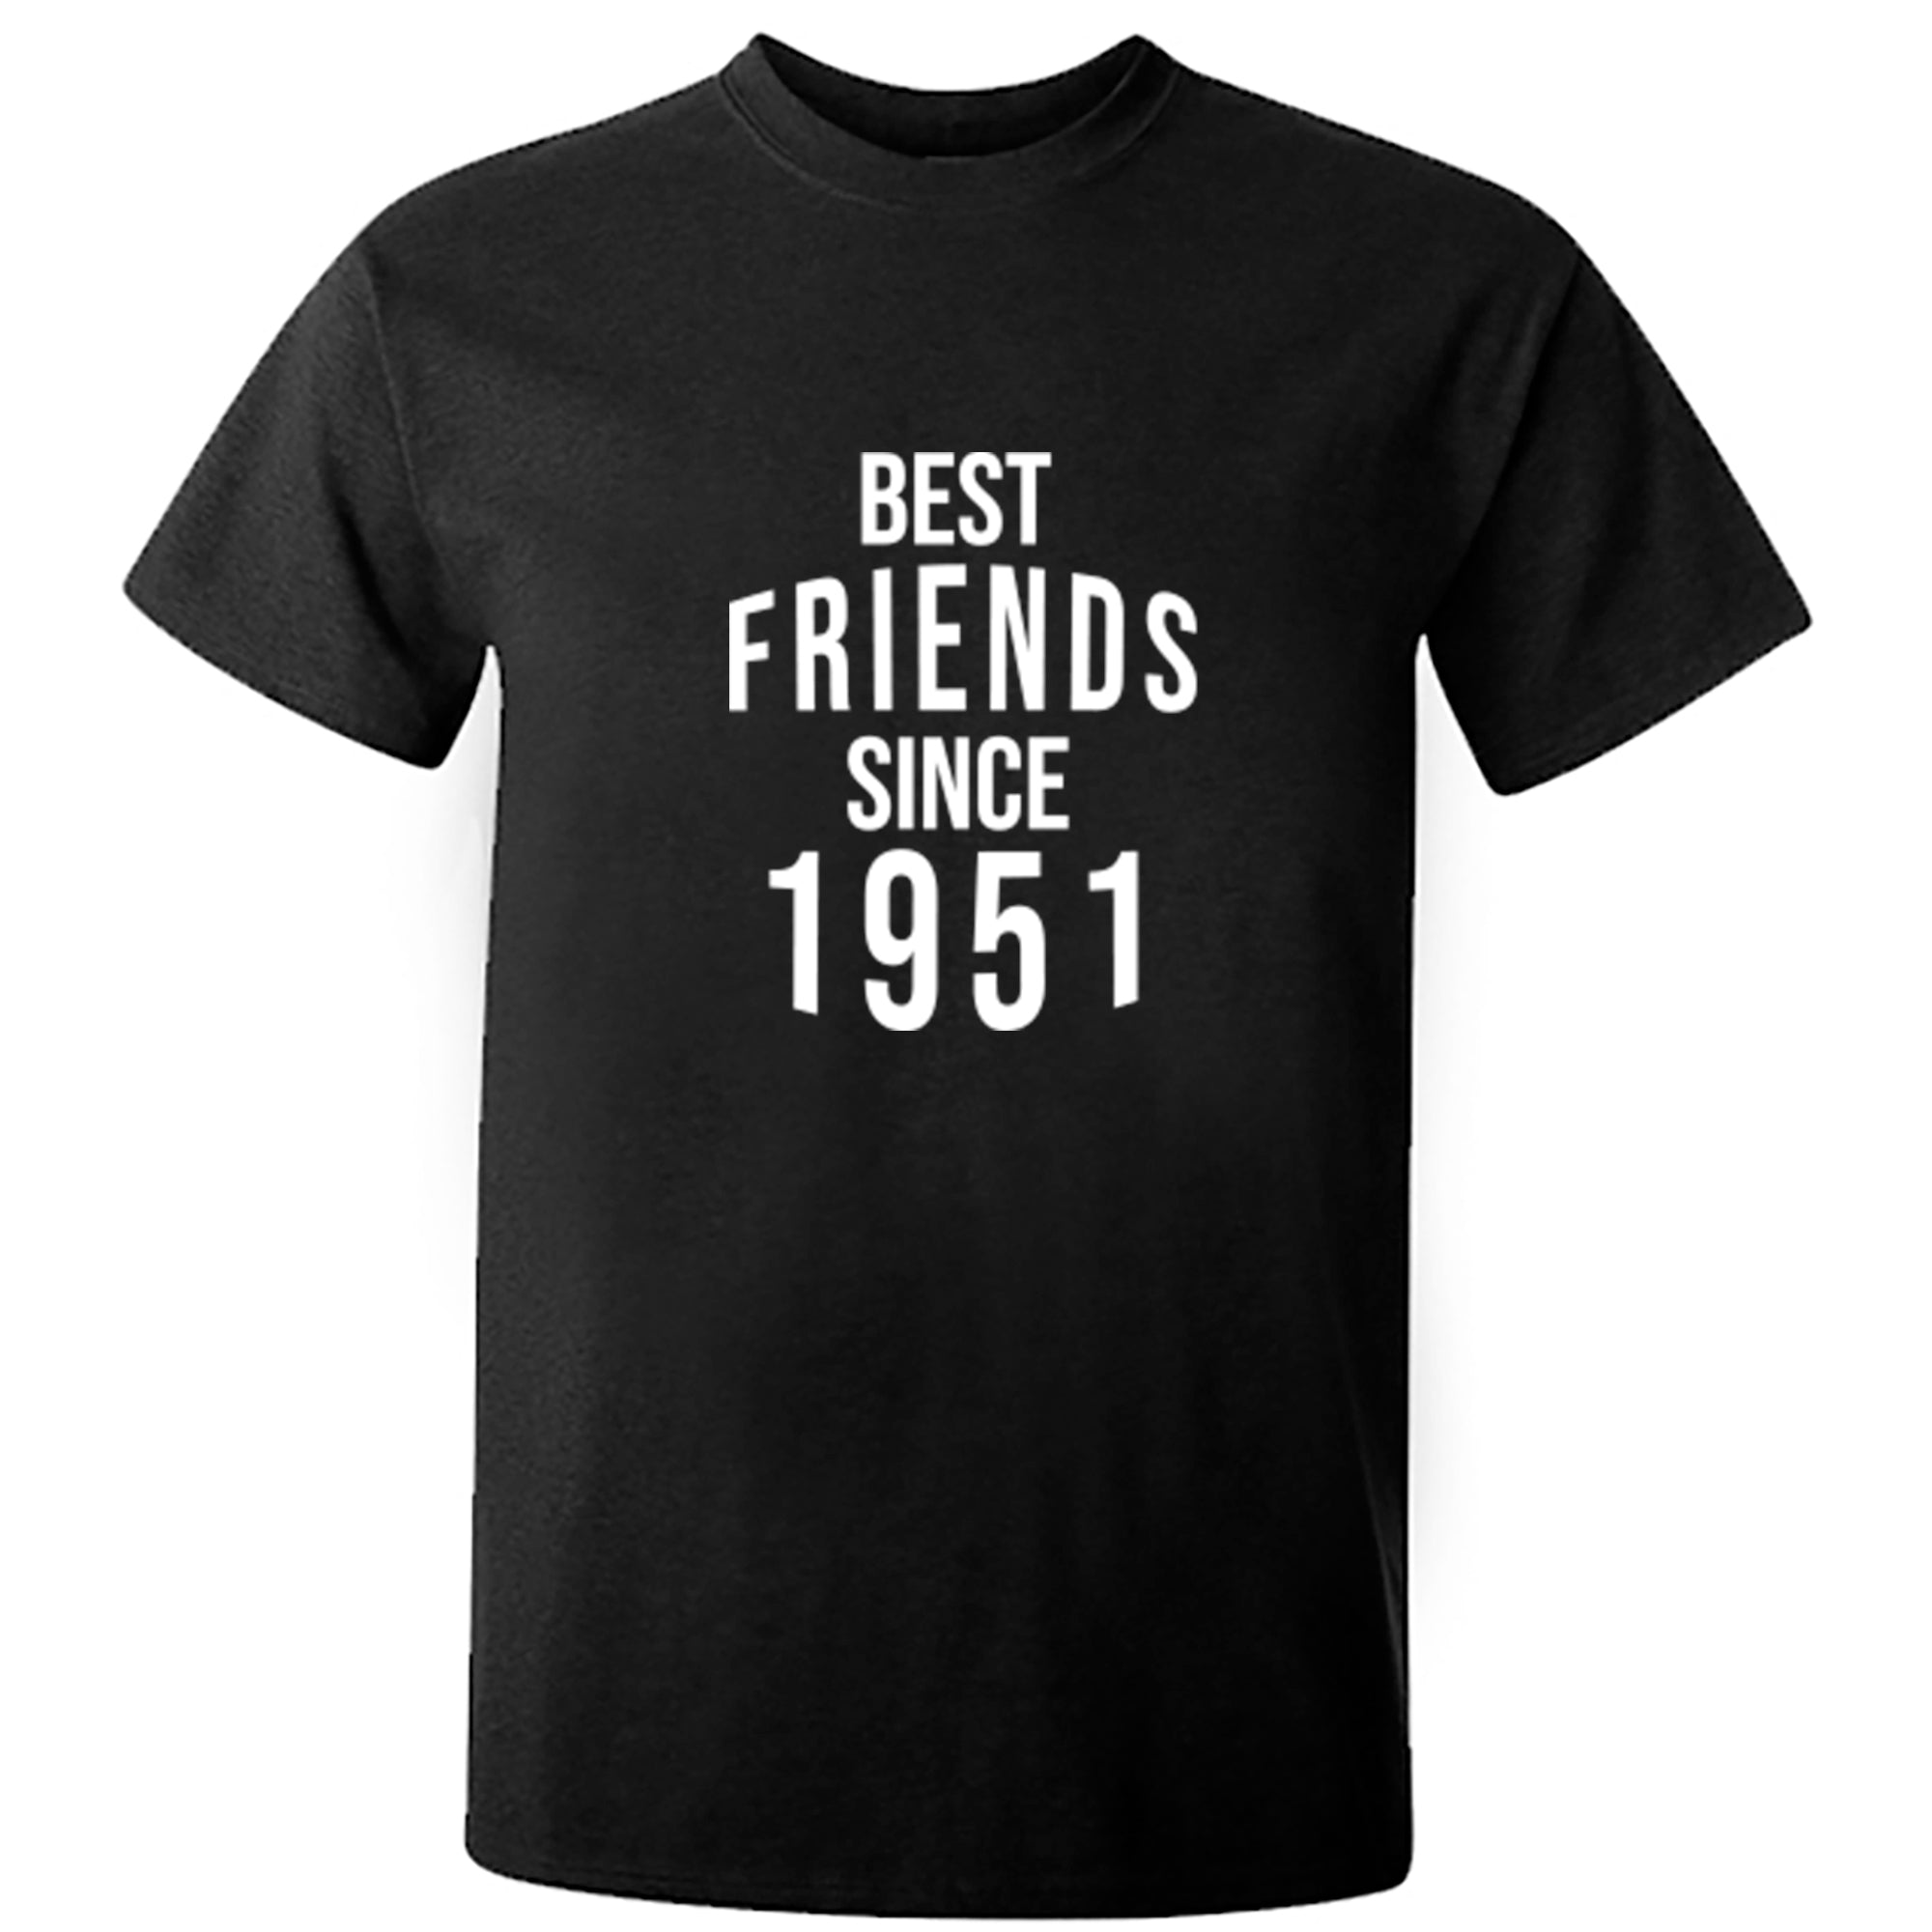 Best Friends Since 1951 Unisex Fit T-Shirt S0530 - Illustrated Identity Ltd.